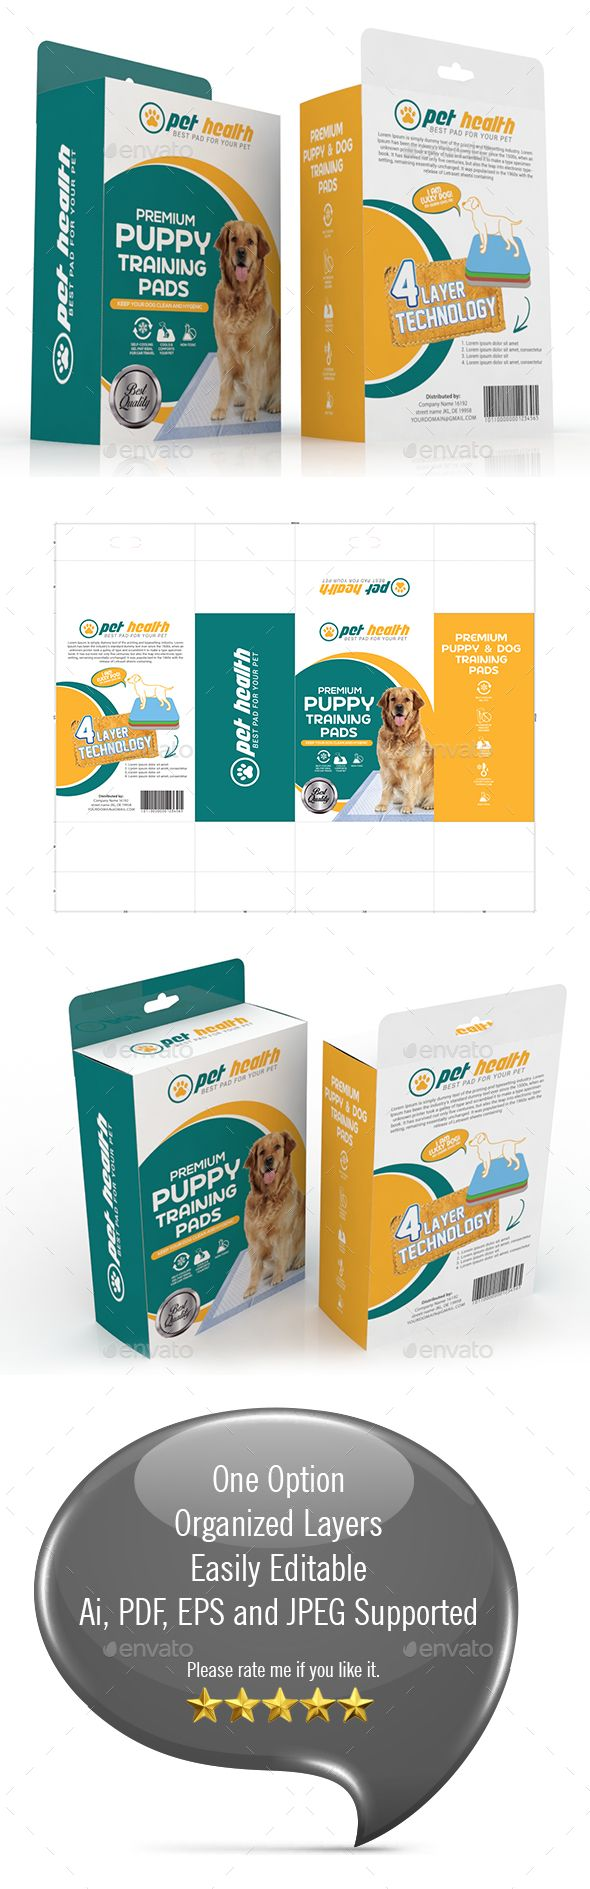 #Dog Training Pad Packaging Template - #Packaging Print #Templates Download here:  https://graphicriver.net/item/dog-training-pad-packaging-template/20323704?ref=alena994